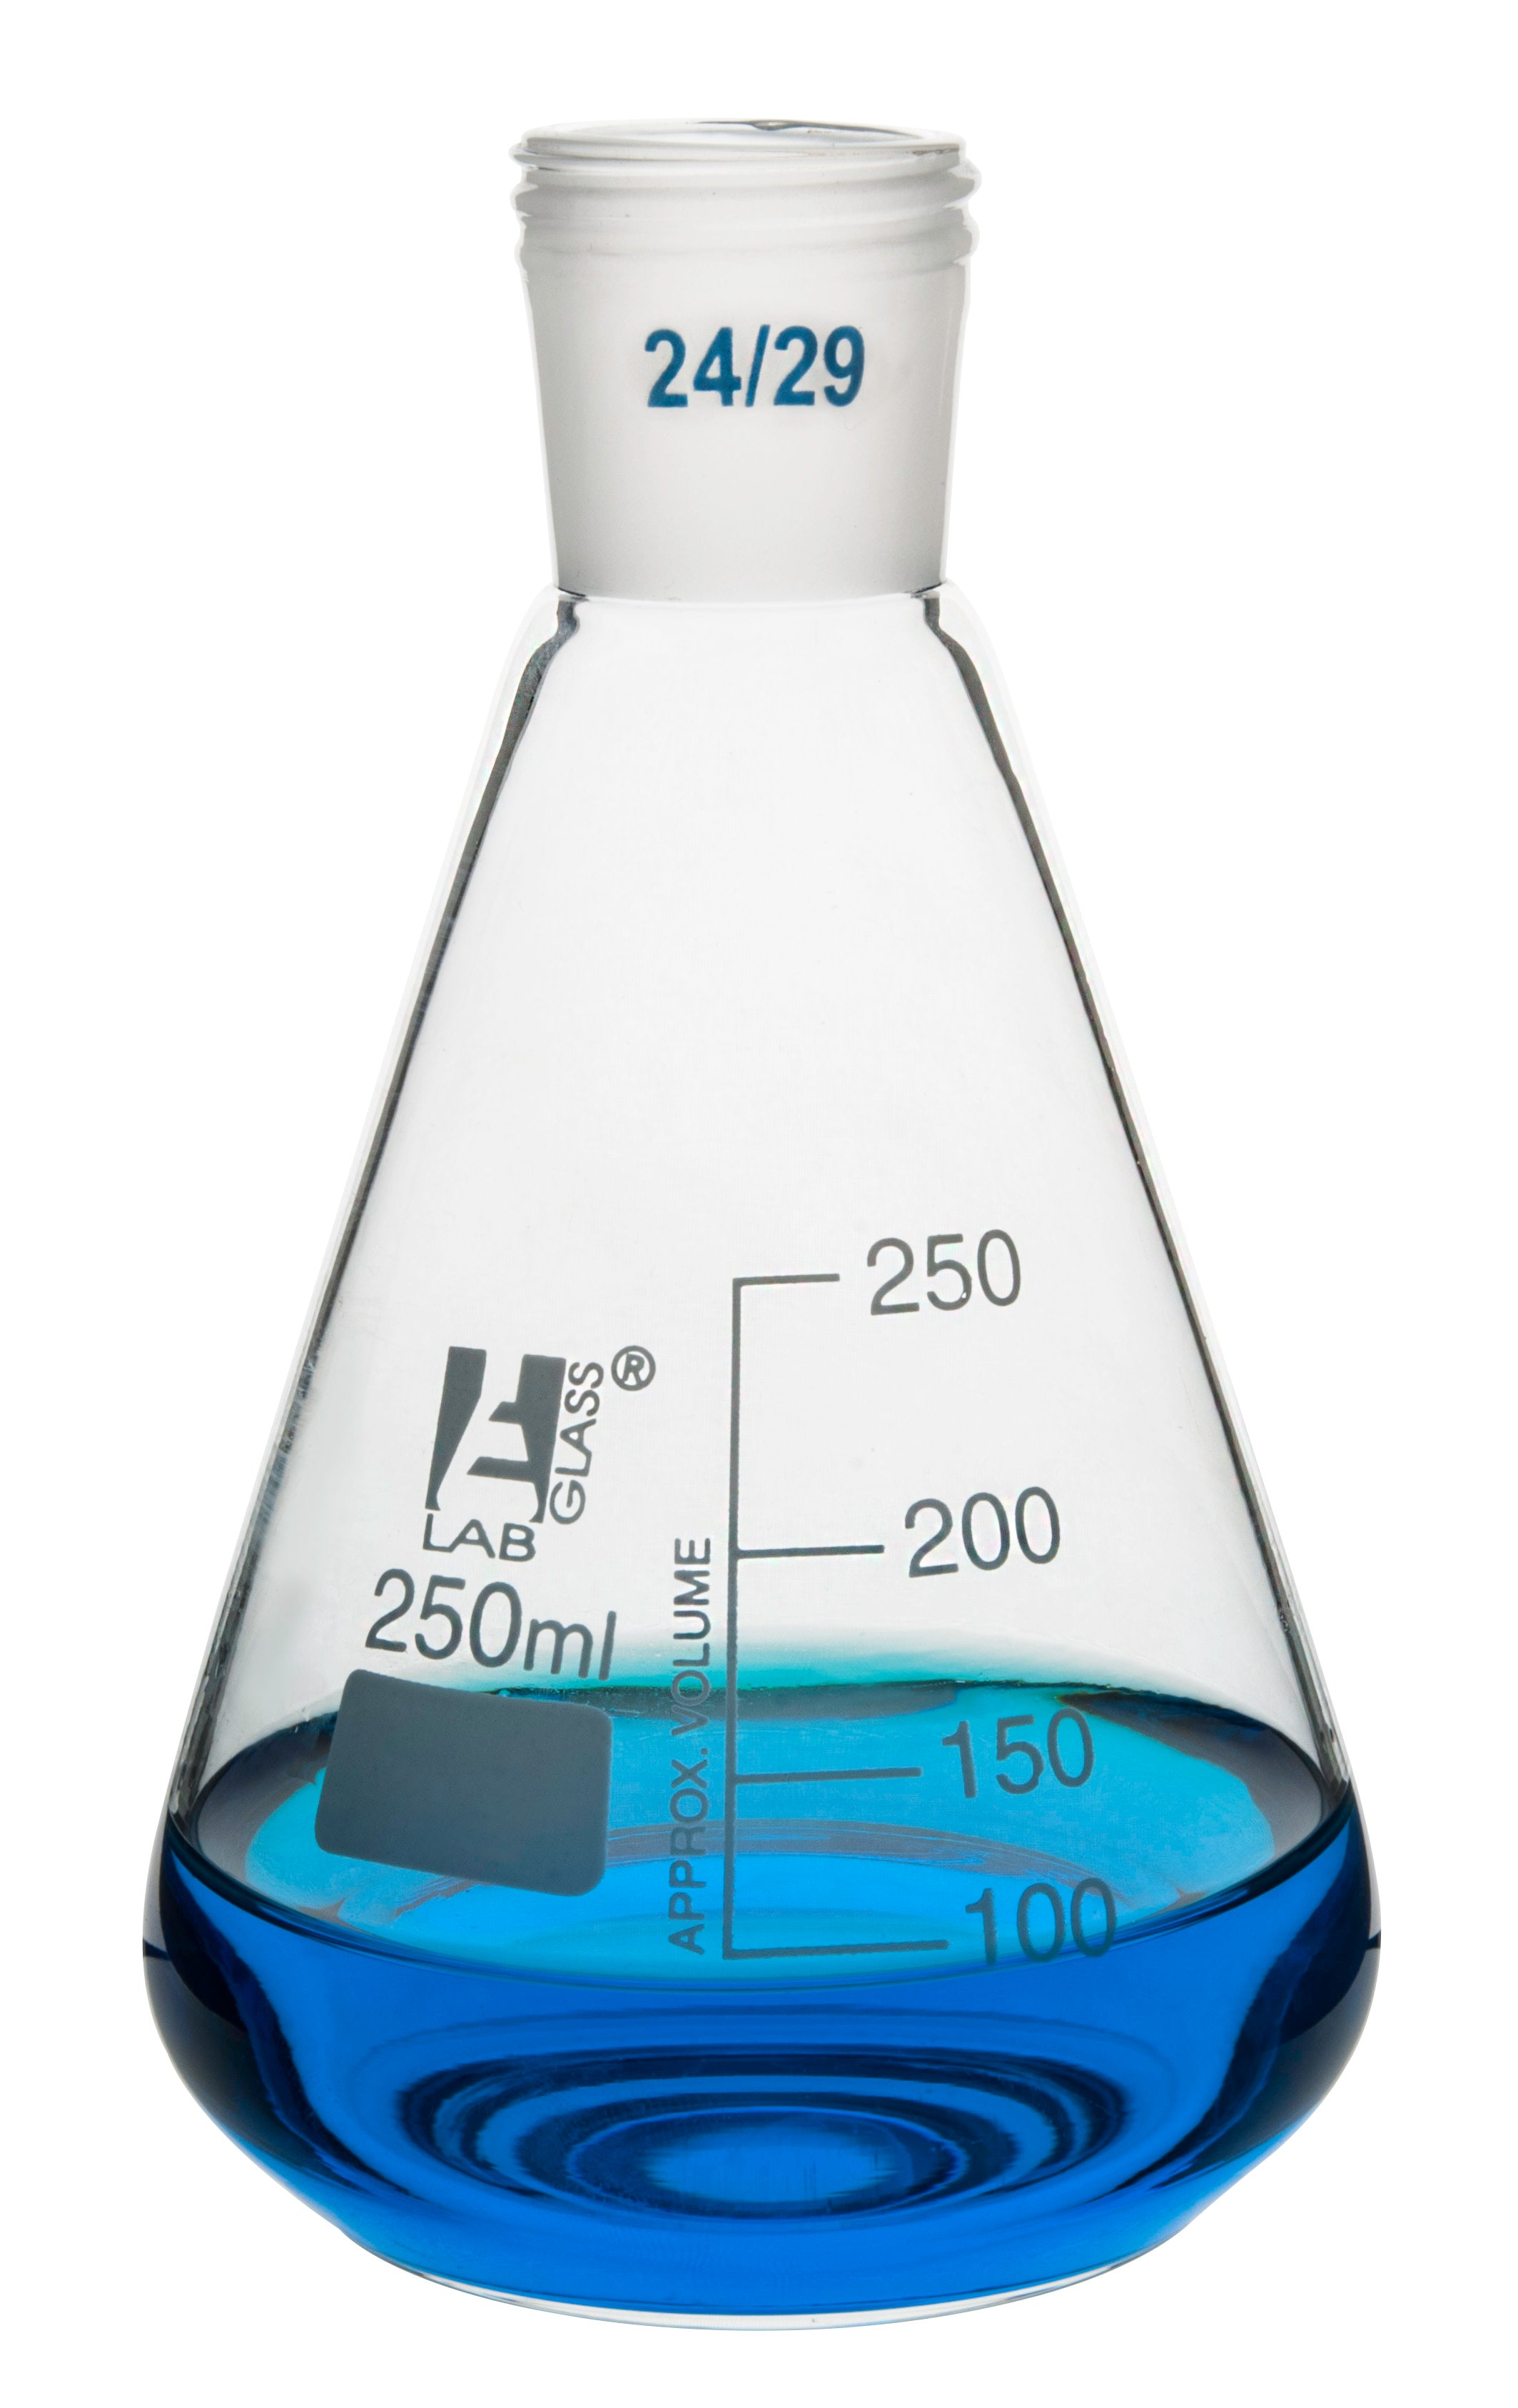 Borosilicate Glass Erlenmeyer Flask with 24/29 Screw Thread Neck Joint, 50 ml, 25 ml Graduations, Autoclavable